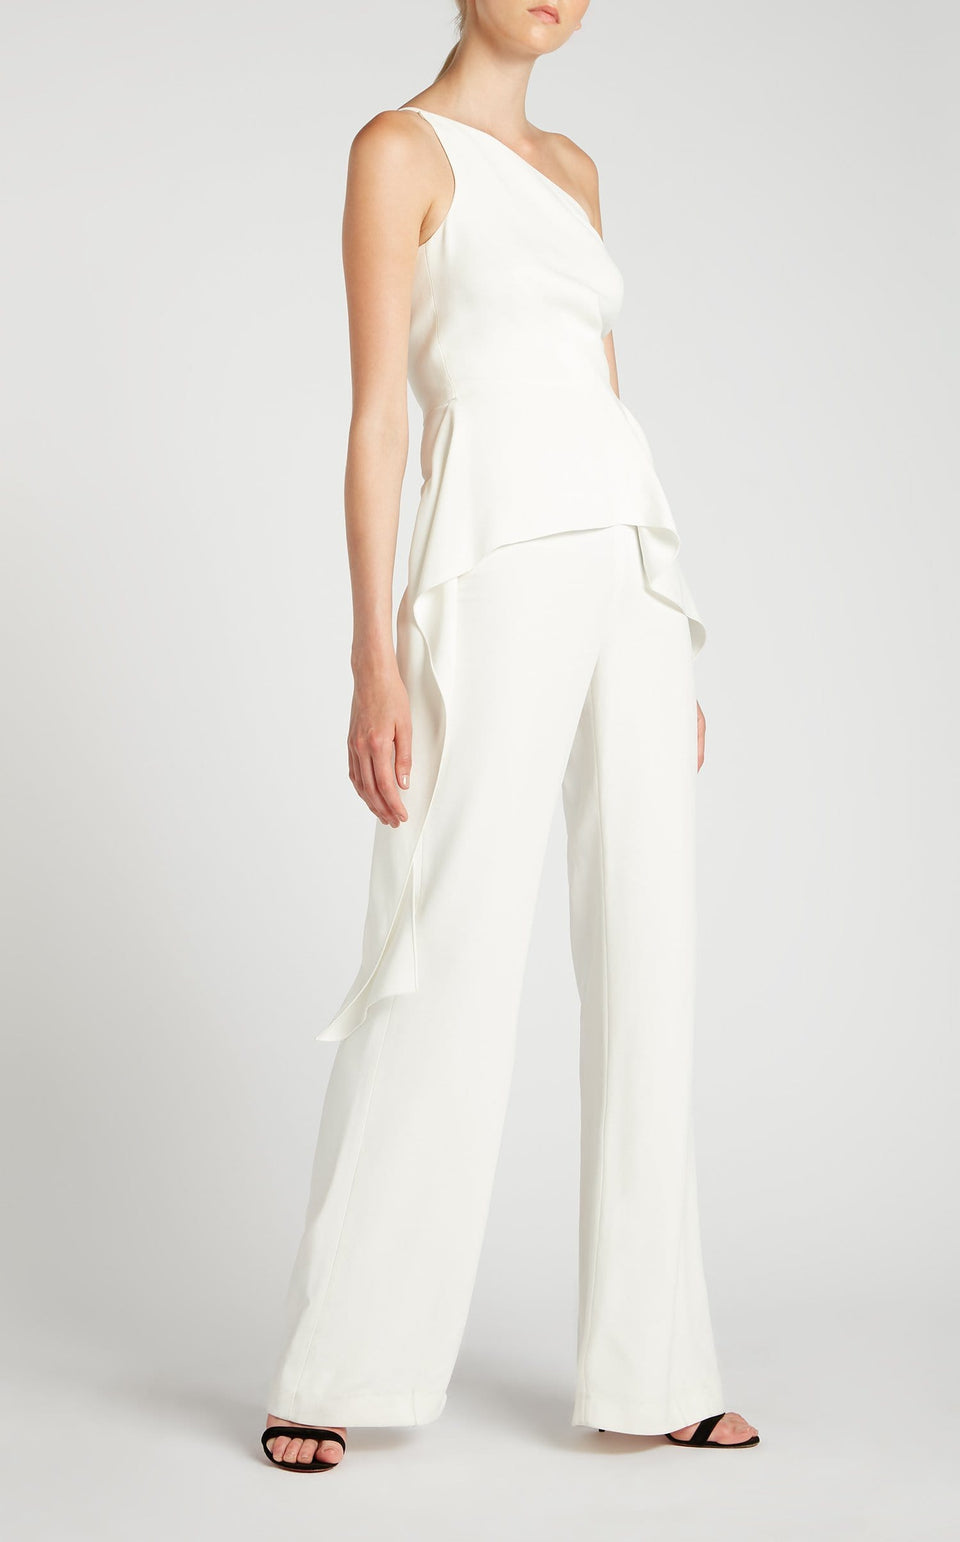 Charlesworth Jumpsuit In White from Roland Mouret